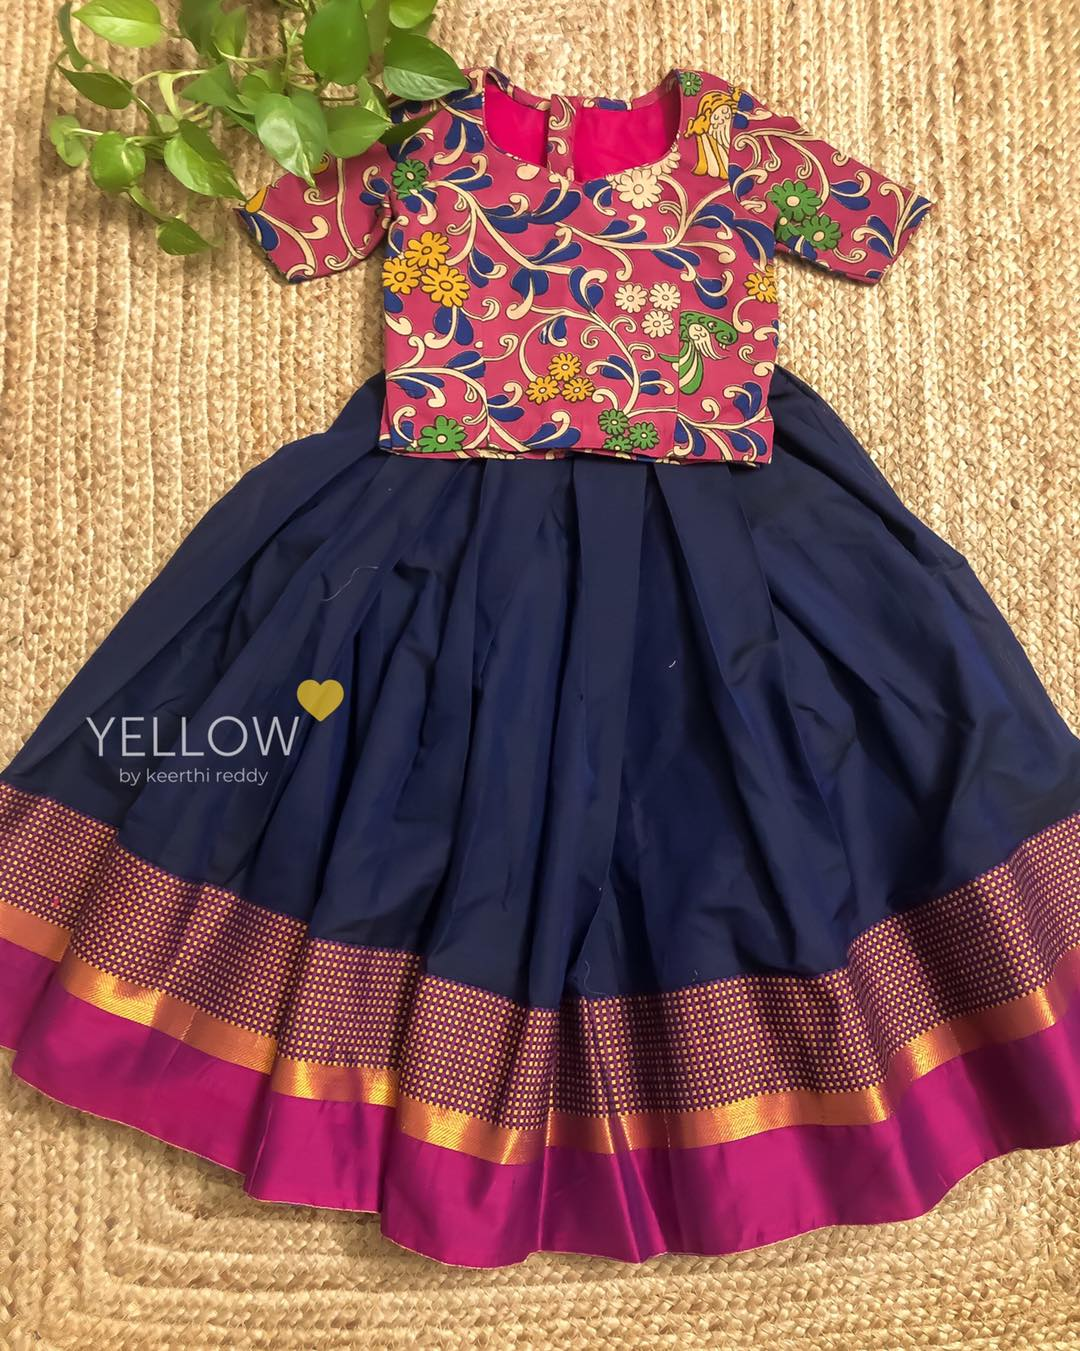 Custom made narayanpet cotton kids lehenga with cotton kalamkari blouse. 2021-05-07